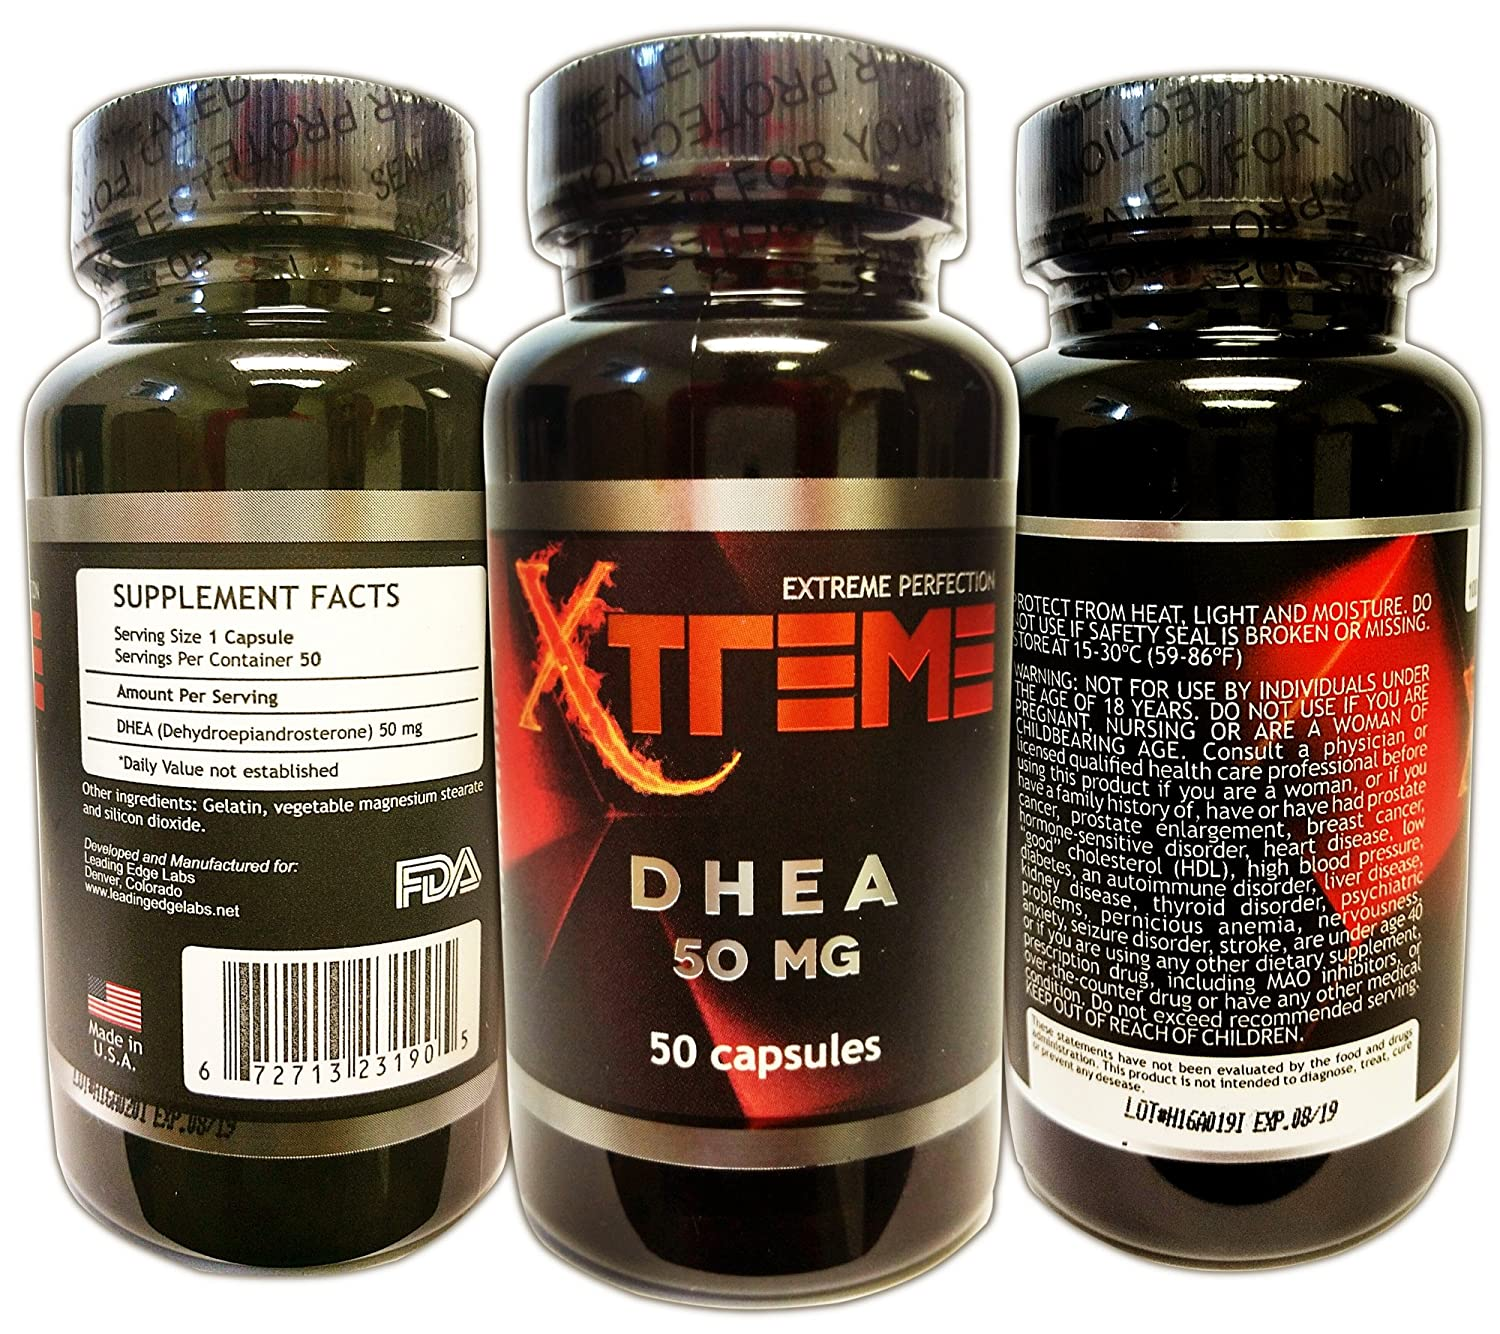 Amazon.com: DHEA 50 mg Ultimate Nutrition Supplement To Promote Balanced Hormone Levels For Men & Women - Look & Feel Younger - Free Shipping: Health ...